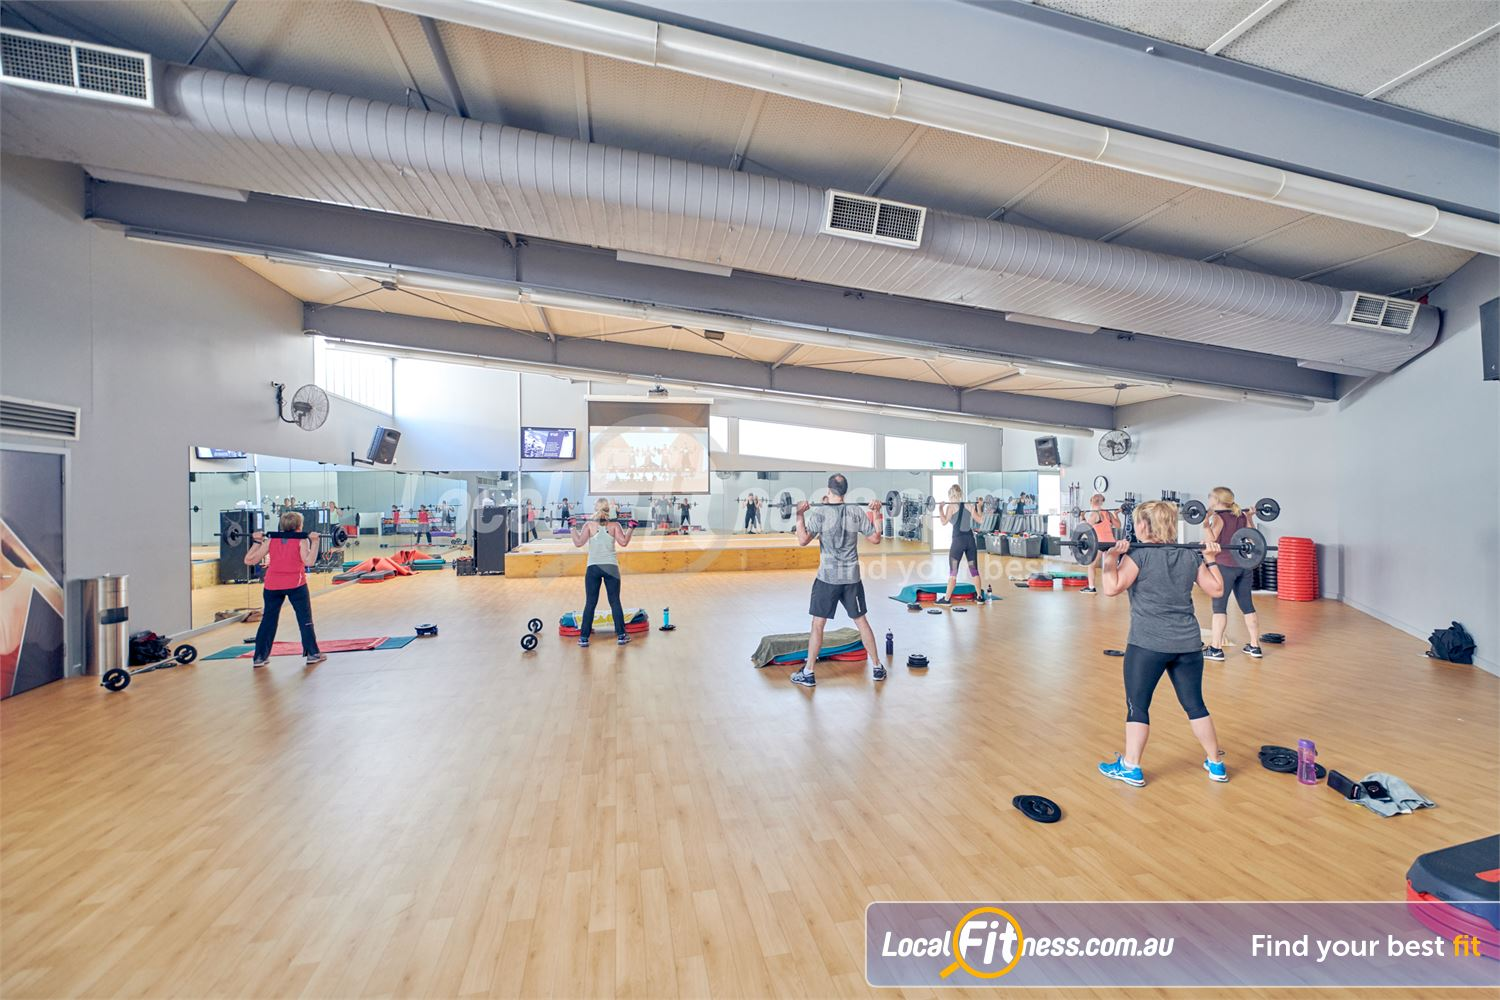 Eltham Leisure Centre Near North Warrandyte Our Eltham Virtual classes combine fitness programs with pumping sound and motivation